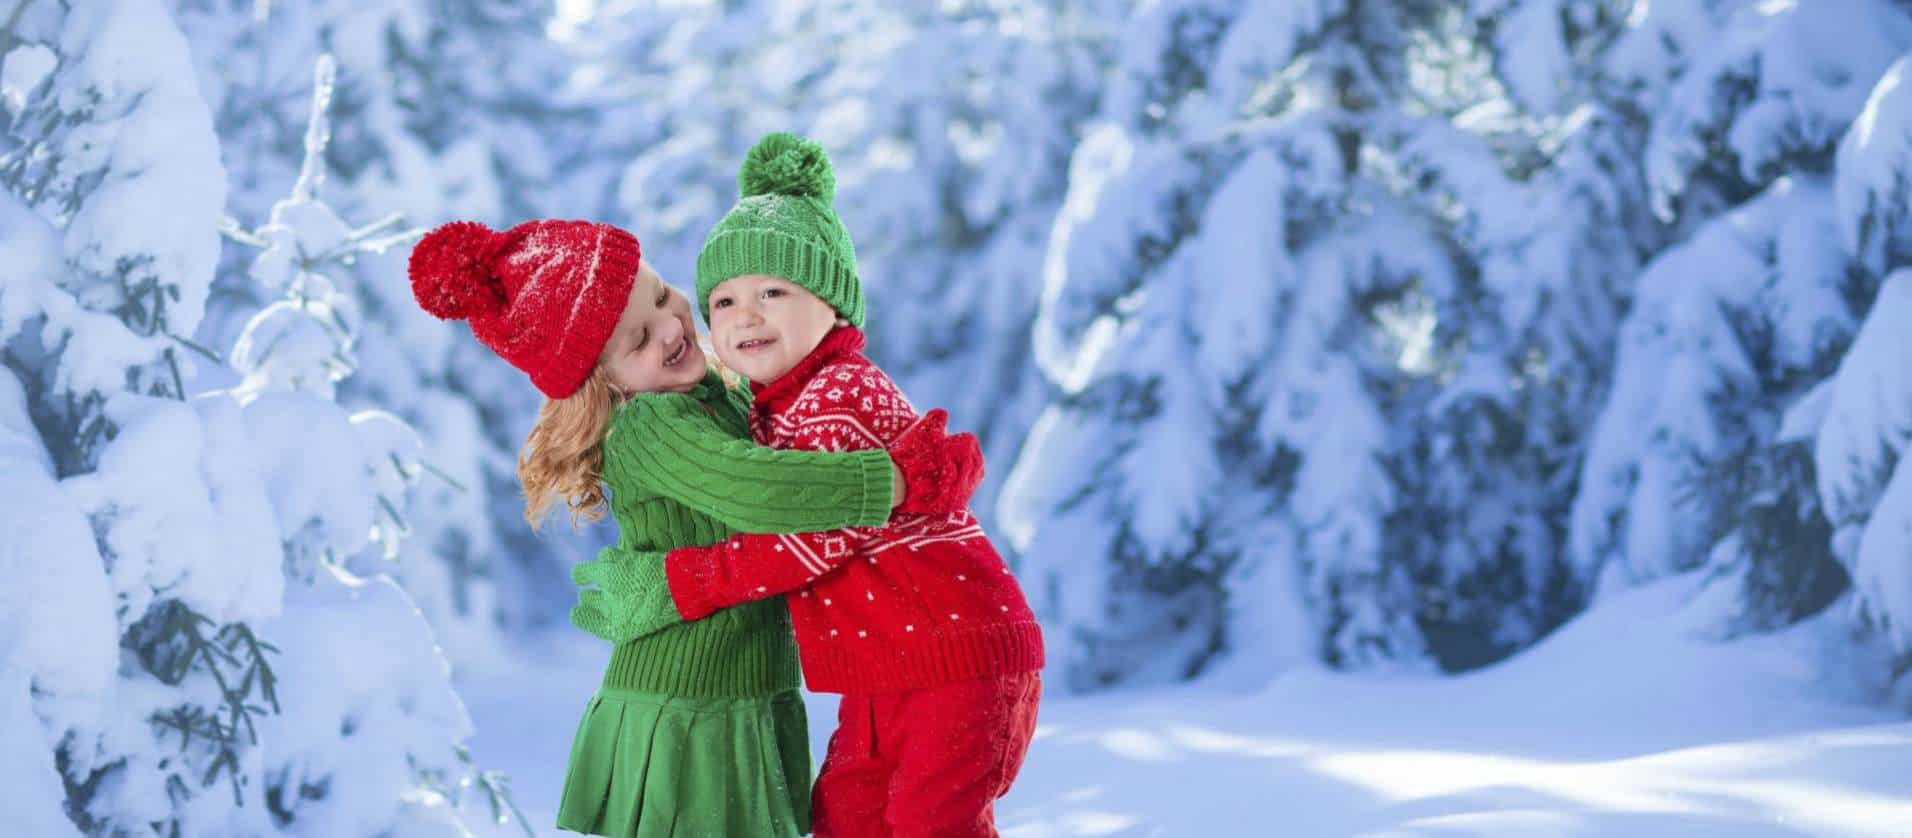 Family Ski Trip Special –  A heart for Families